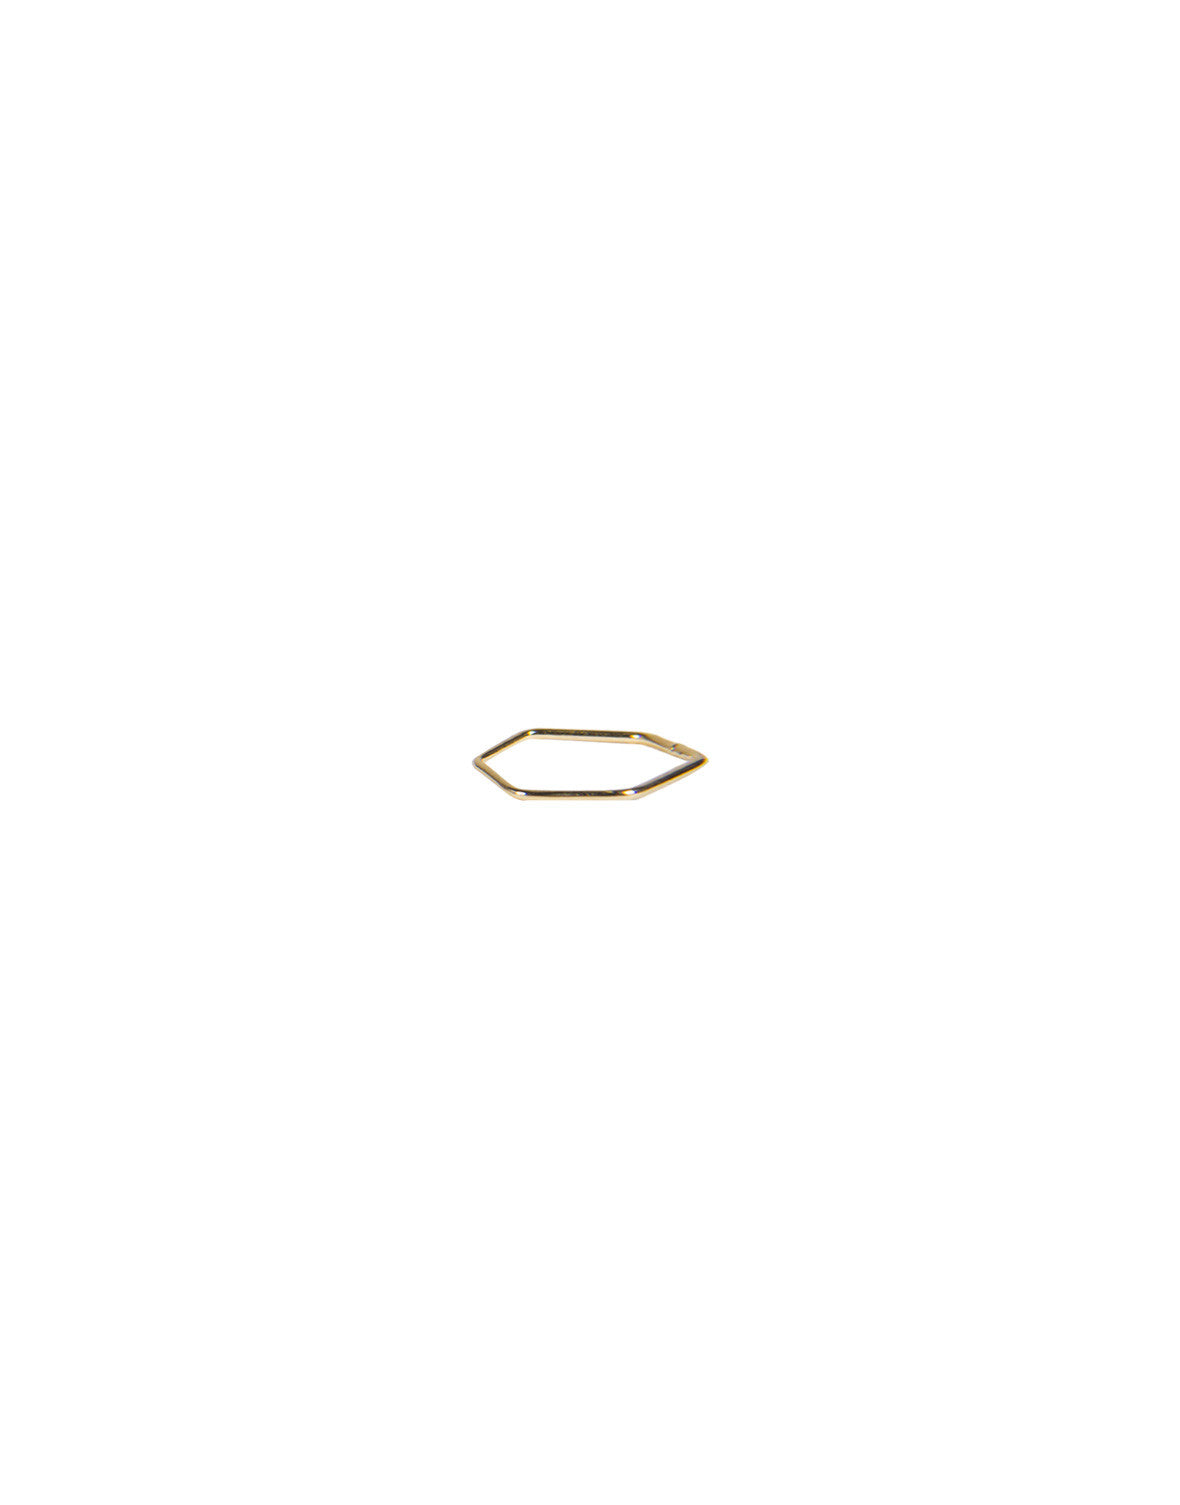 Hexagon Band Knuckle Ring - Ana GR 7235-Gold